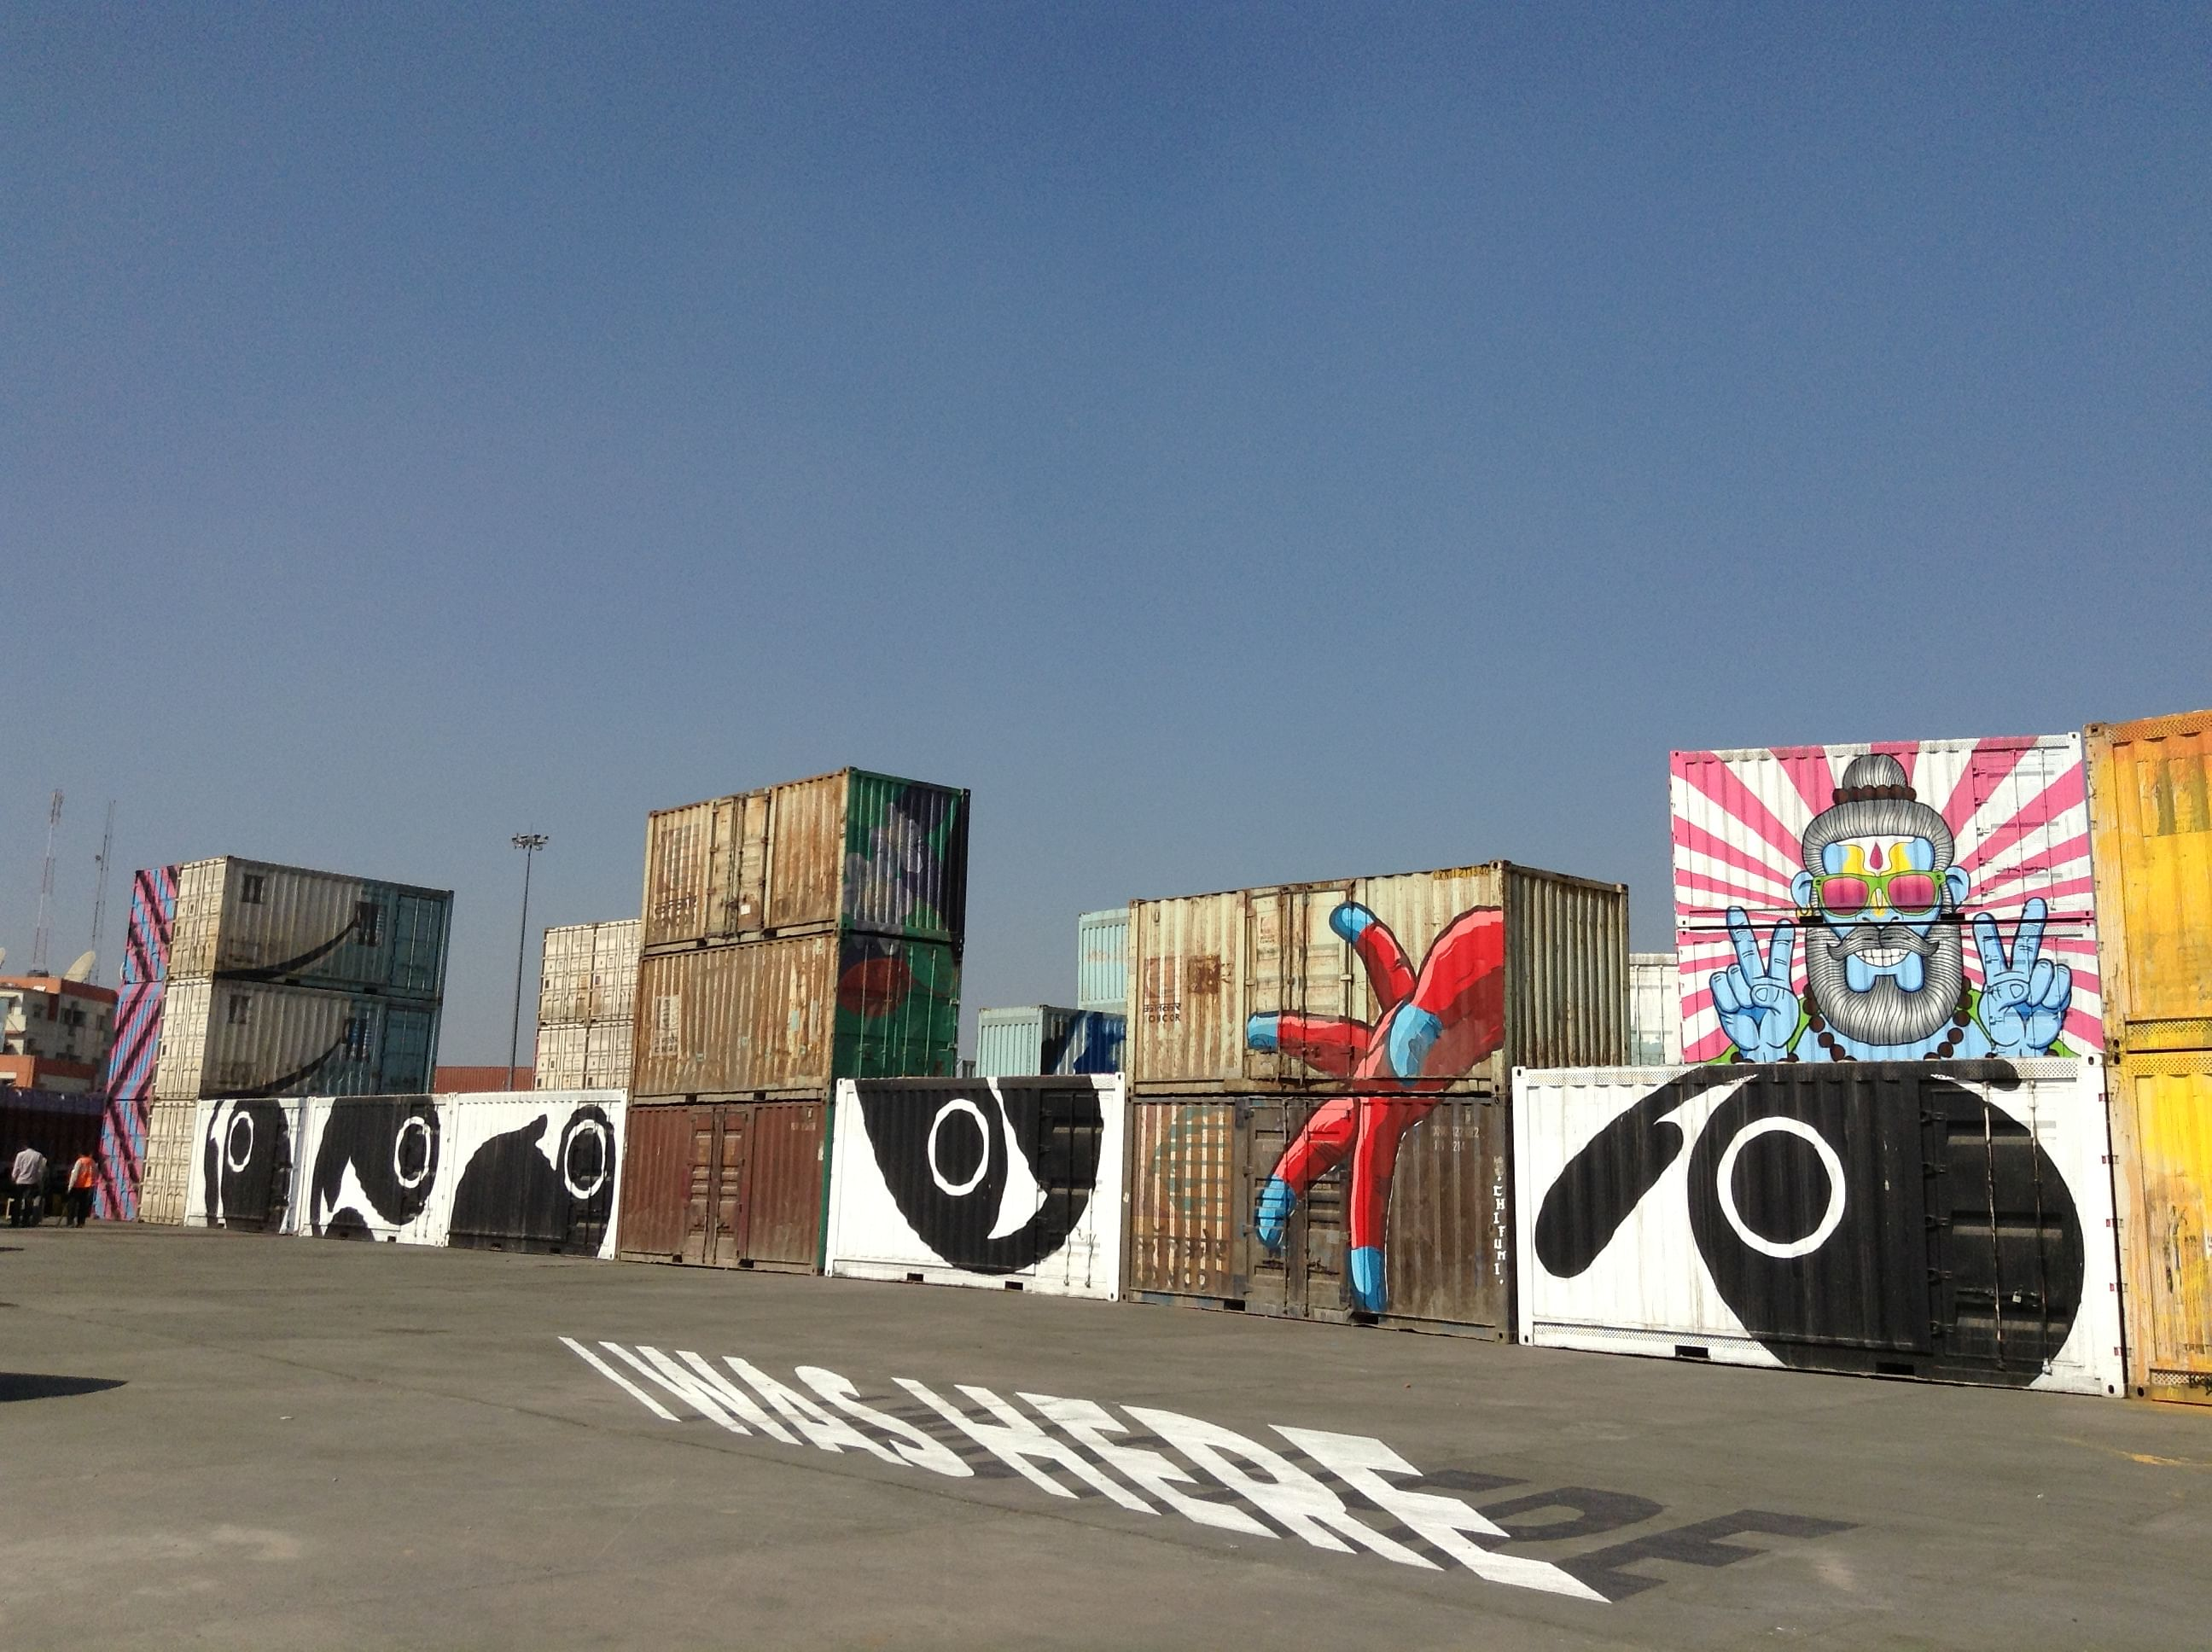 Paintings on the shipping containers are indeed a sight to behold